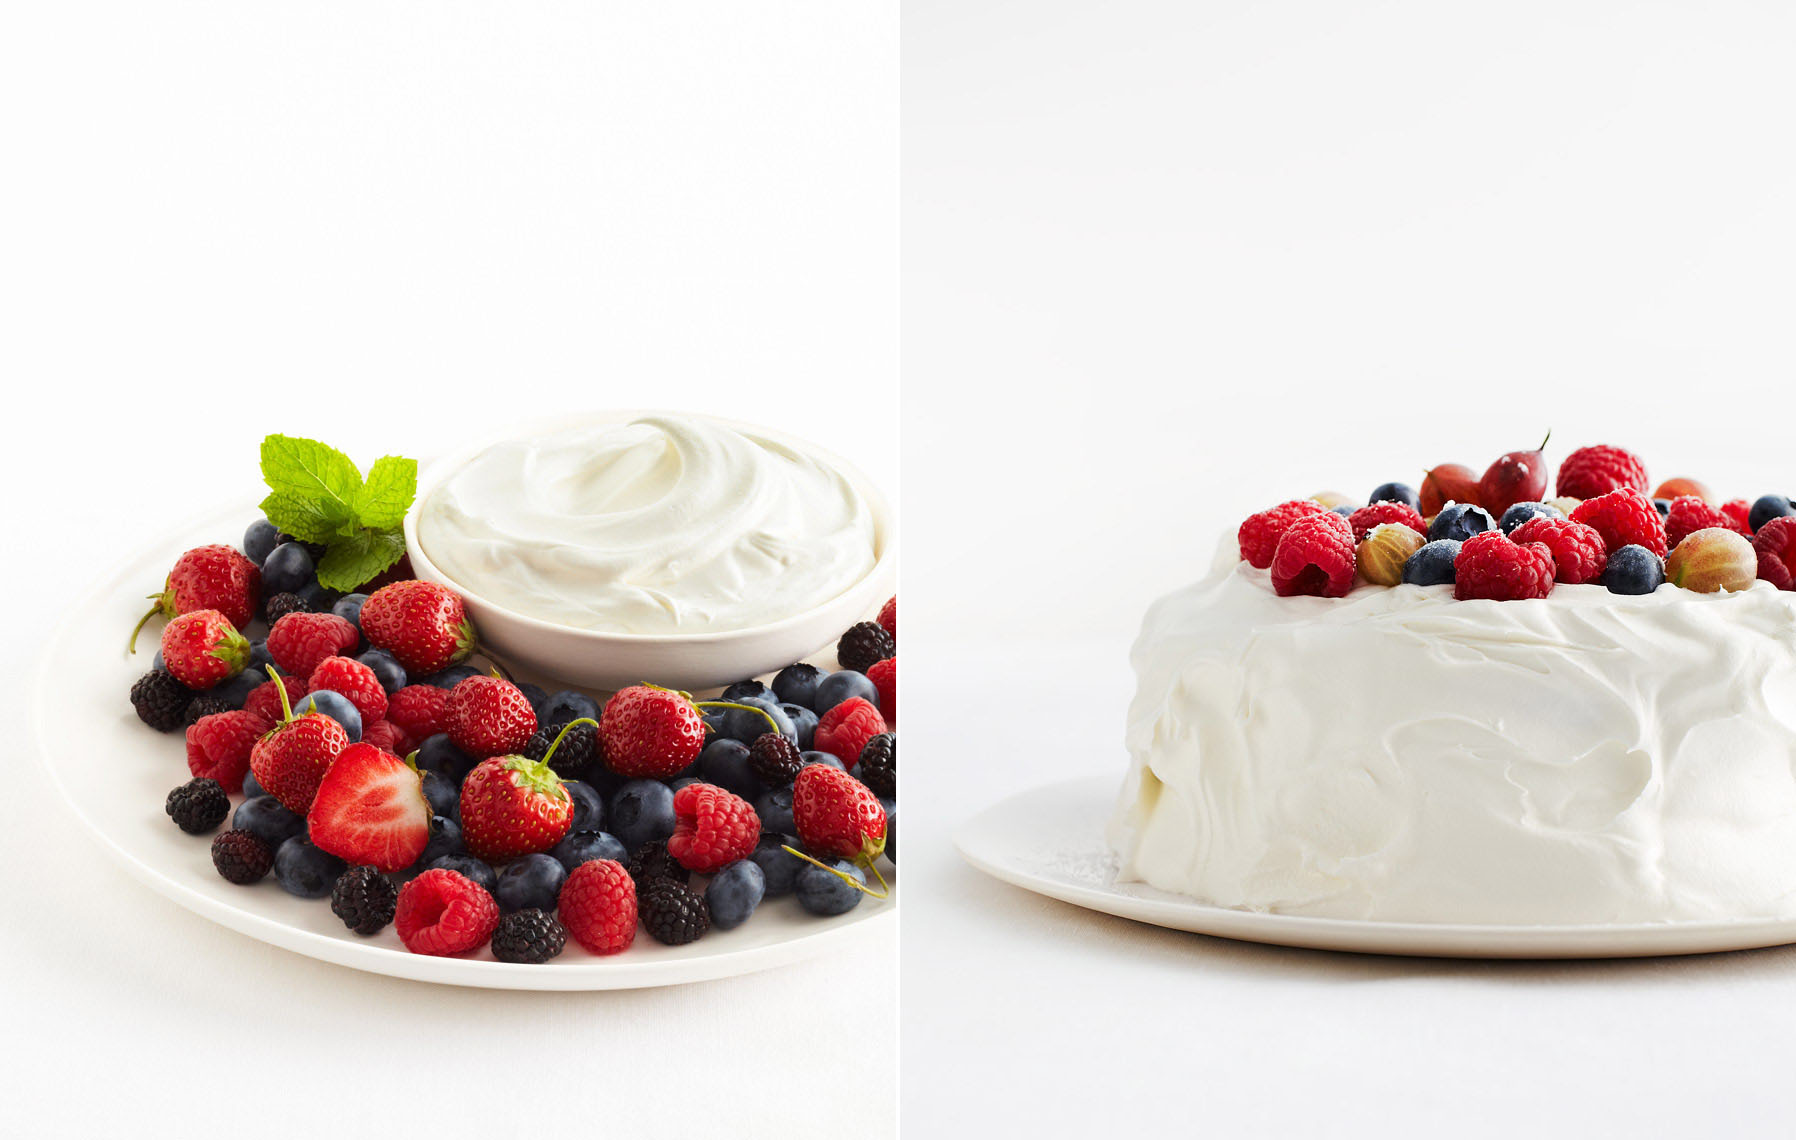 COOLWHIP-AND-BERRIES.jpg